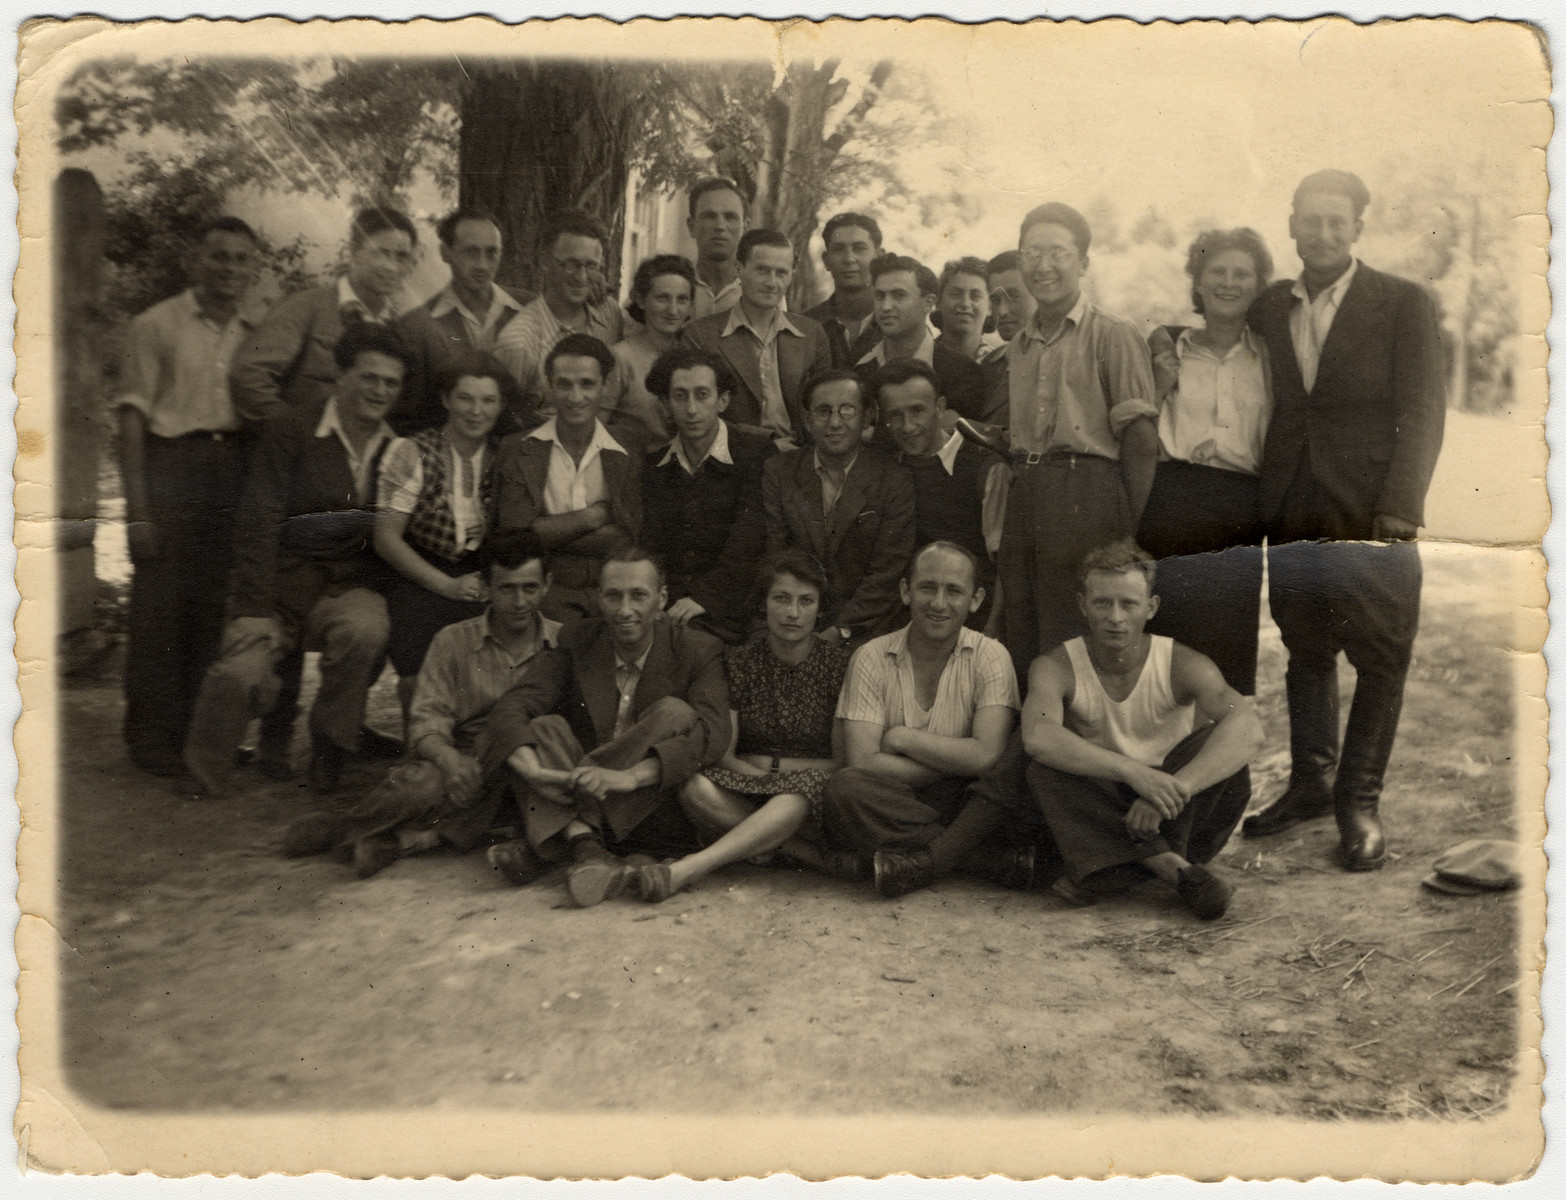 Former partisans from Belorussia and Lithuania gather for a reunion in Palestine.  Zus Bielski is in the back center.  Abba Kovner is seated in the center, second row.  His wife Vitka Kempner is behind him.  Shmerke Kaczerginsky is standing third from the left.